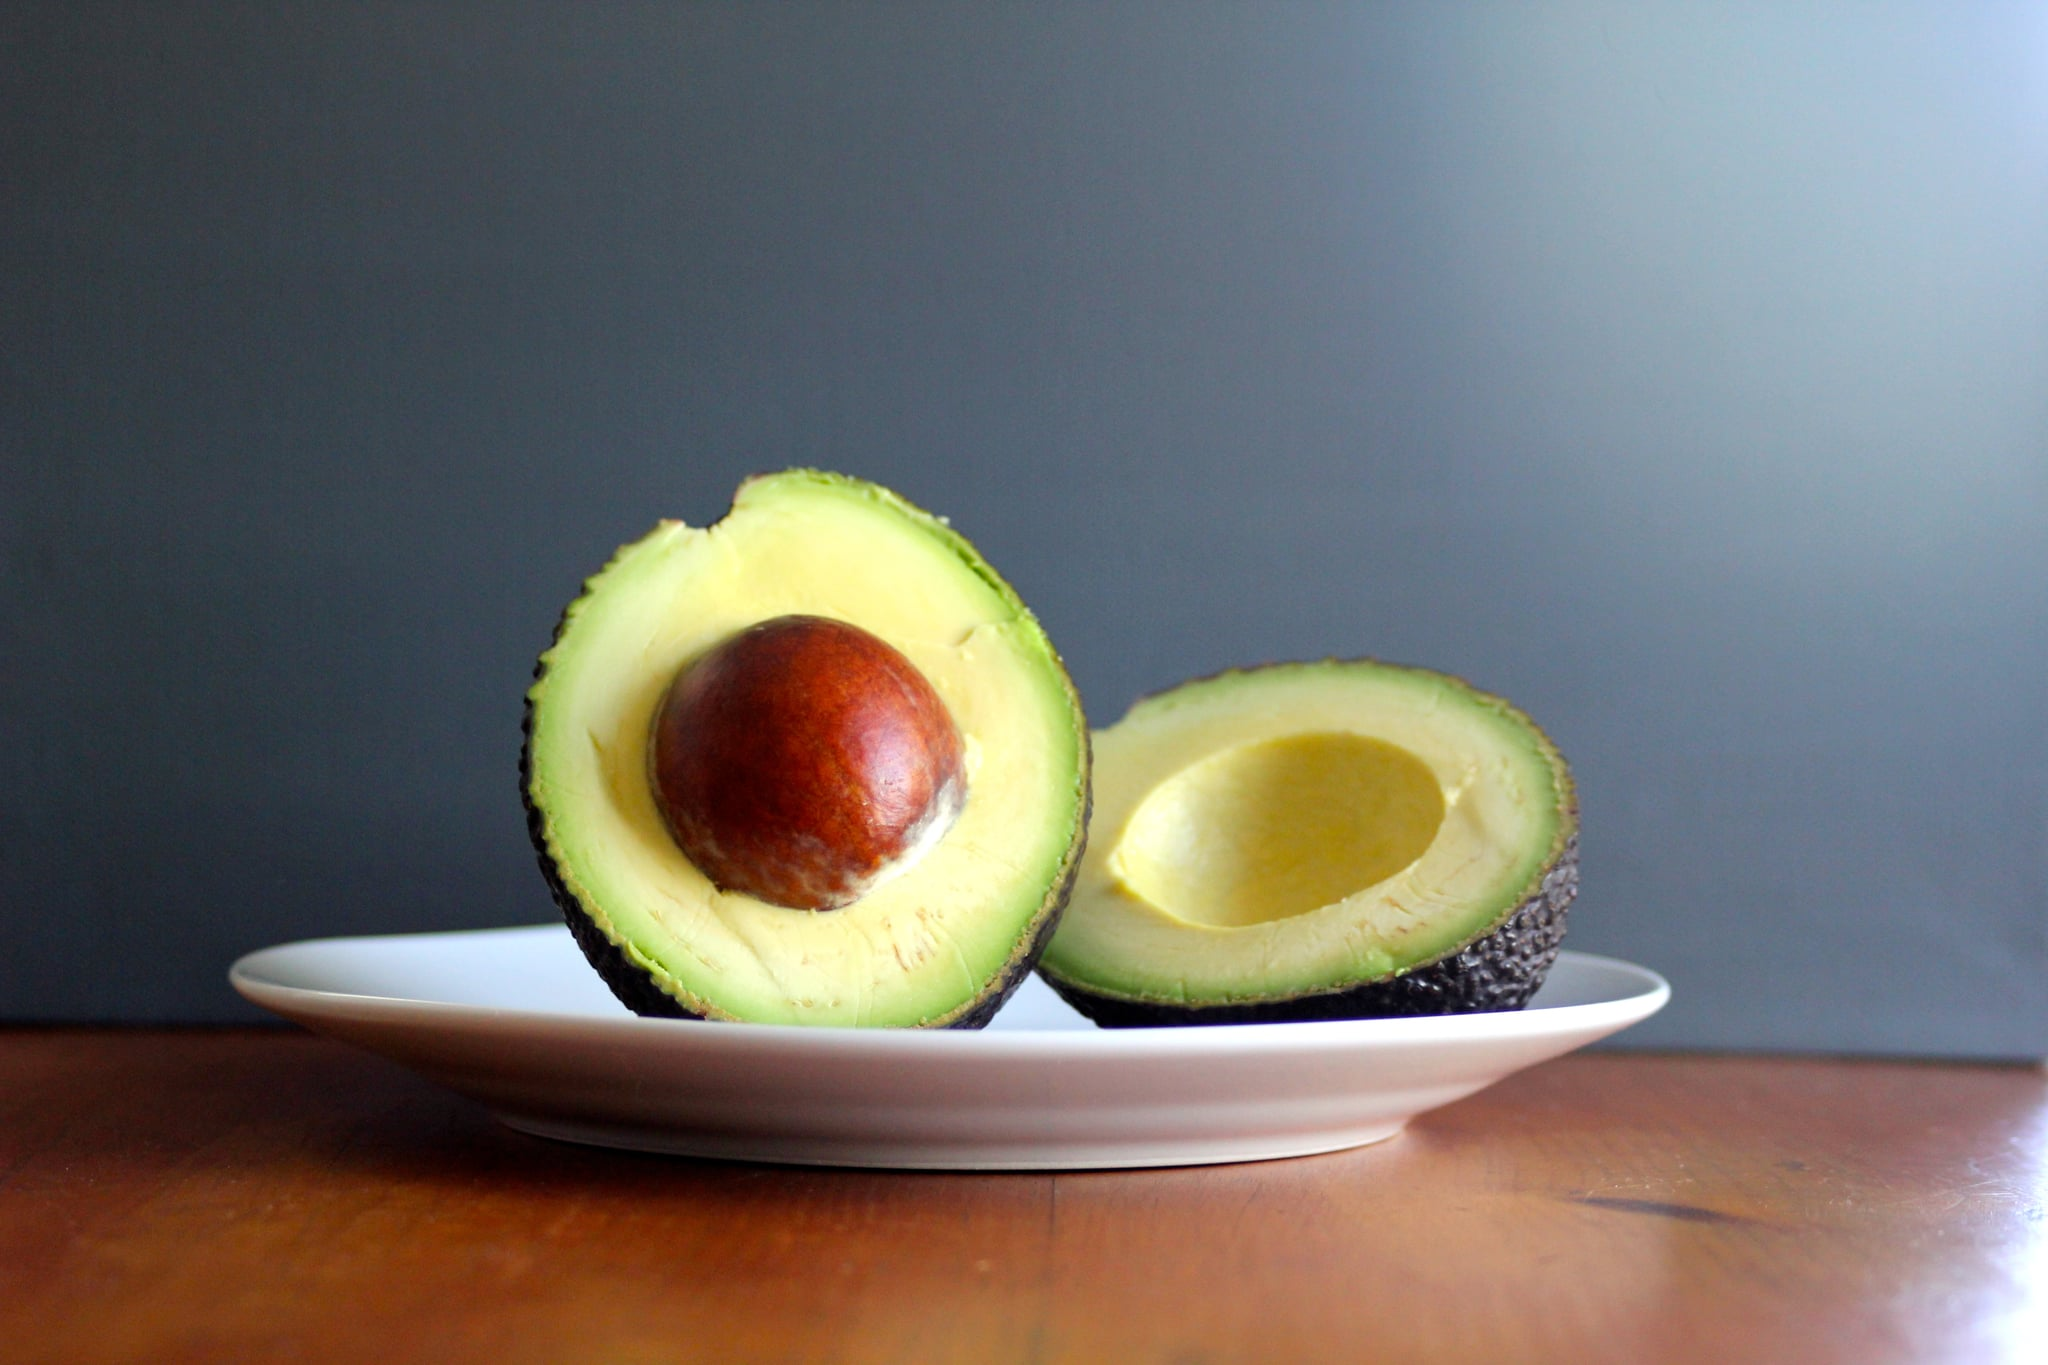 How to clean avocados correctly: technology 99